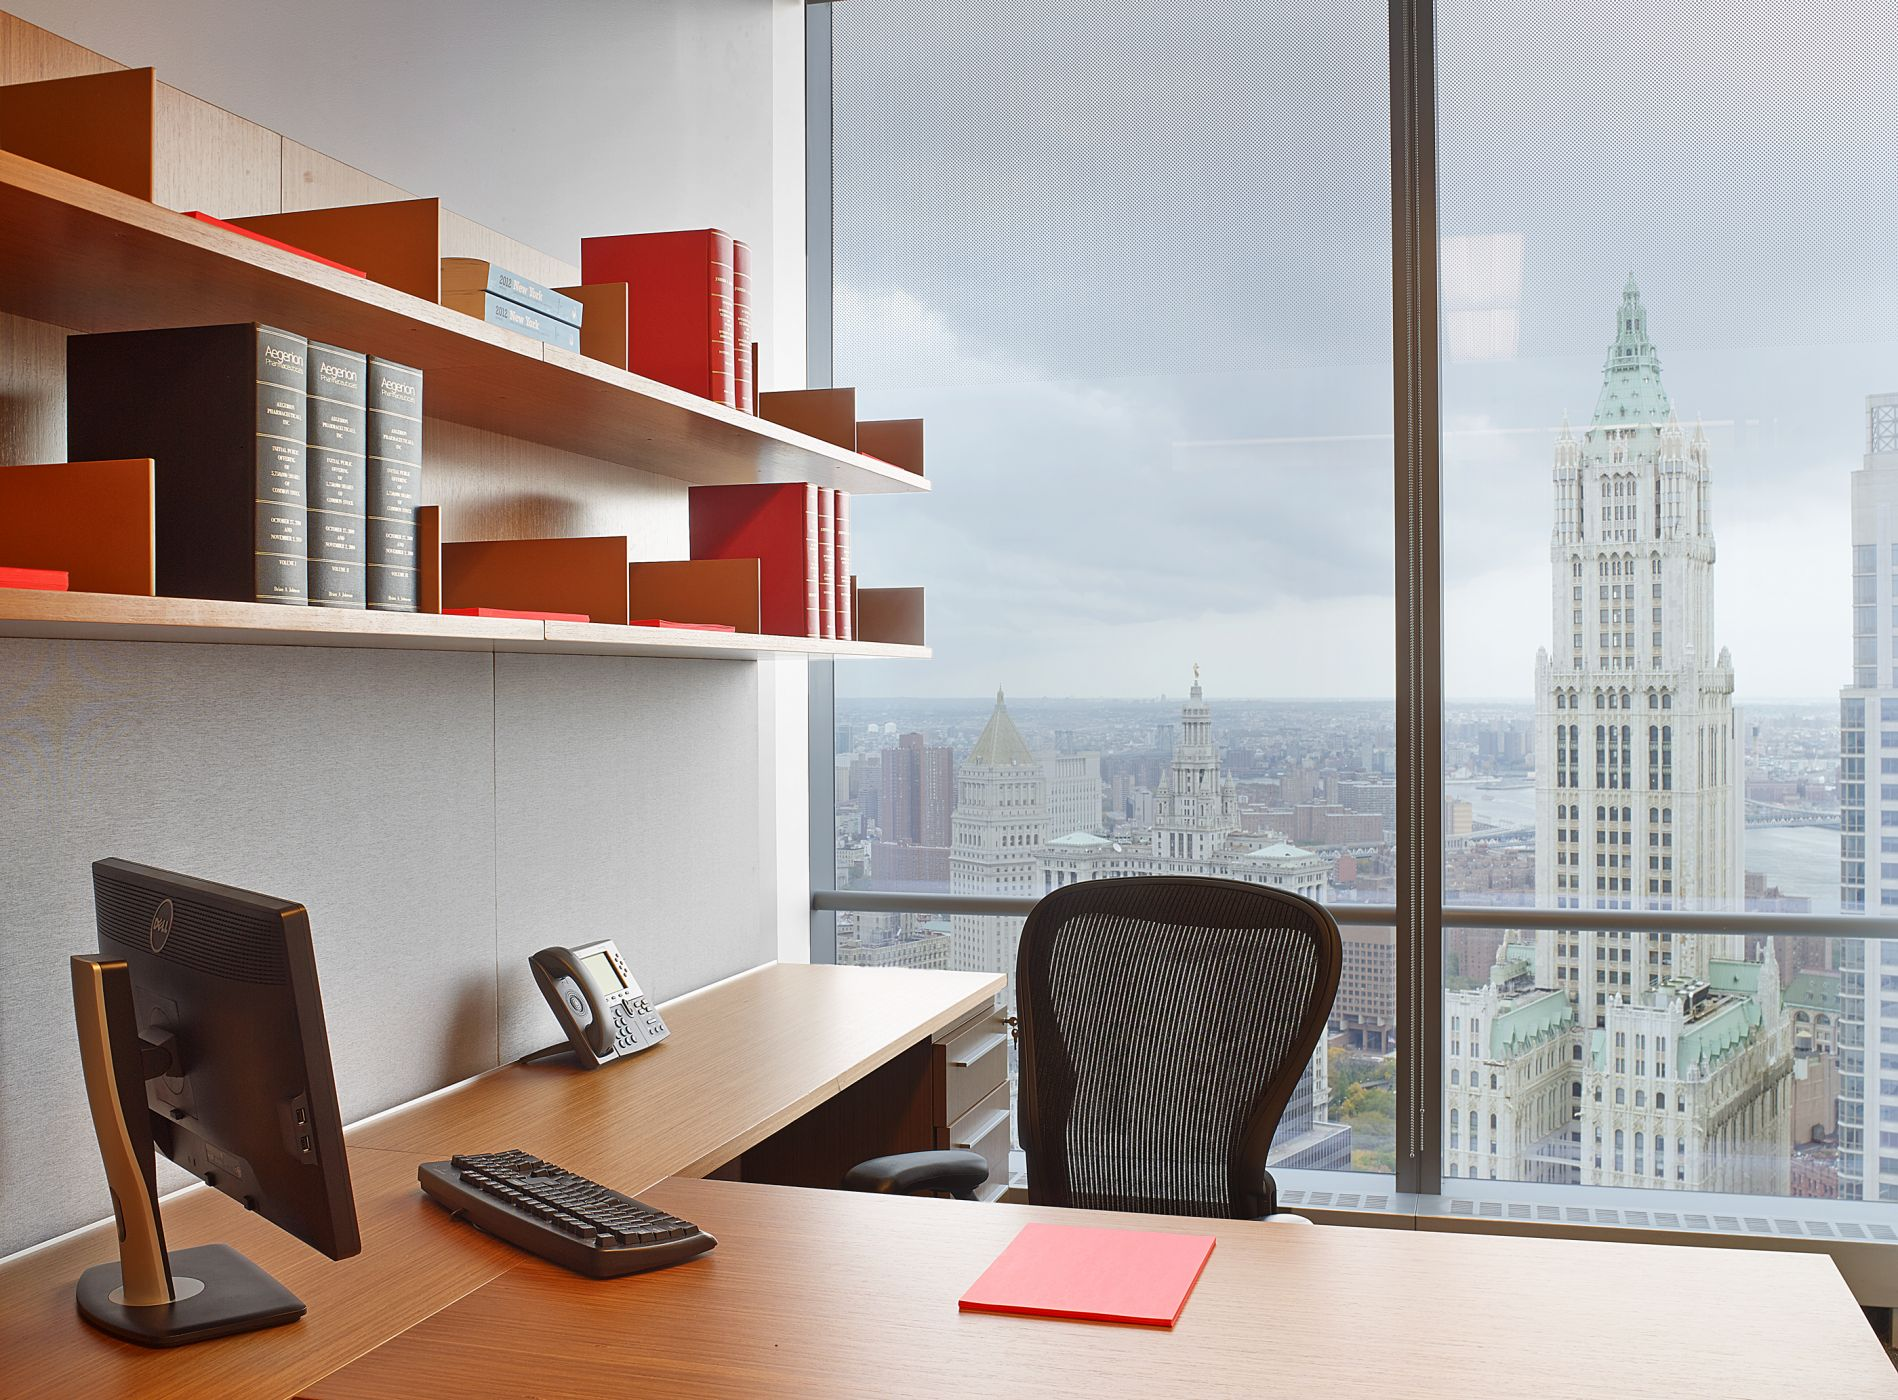 Associate offices feature  floating open shelves.